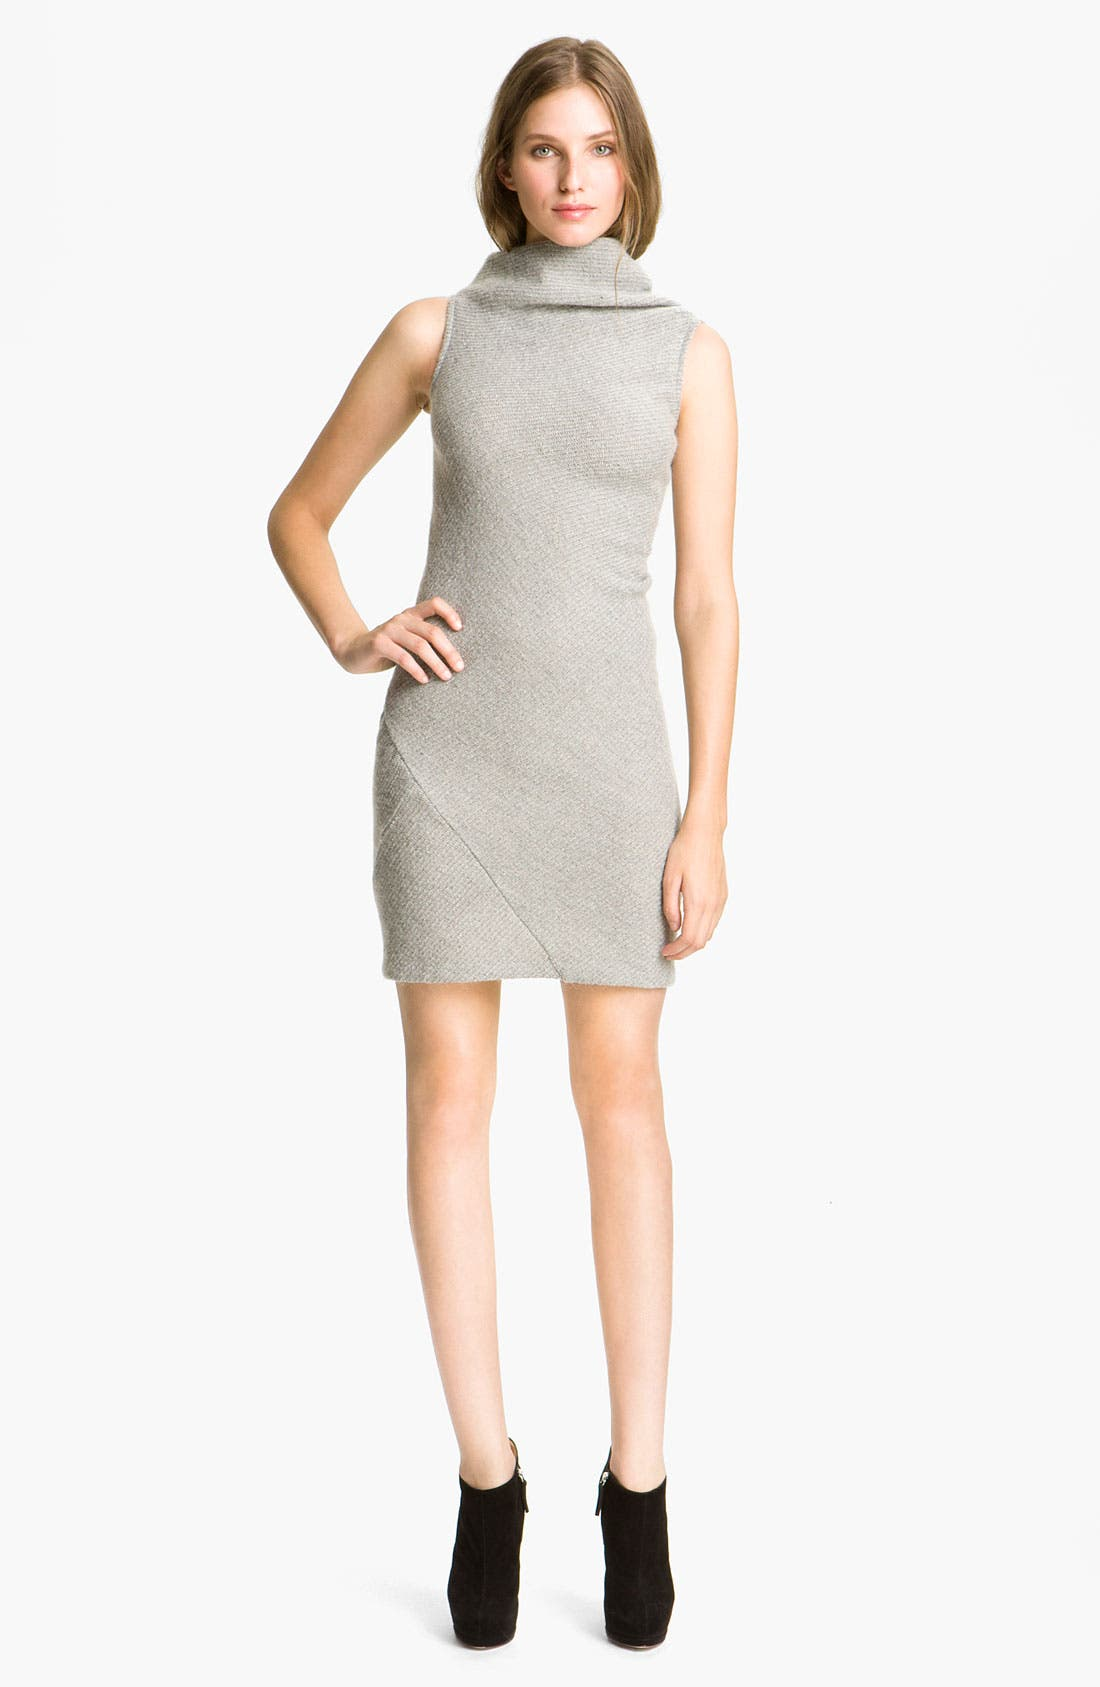 Alternate Image 1 Selected - See by Chloé Seam Detail Knit Dress